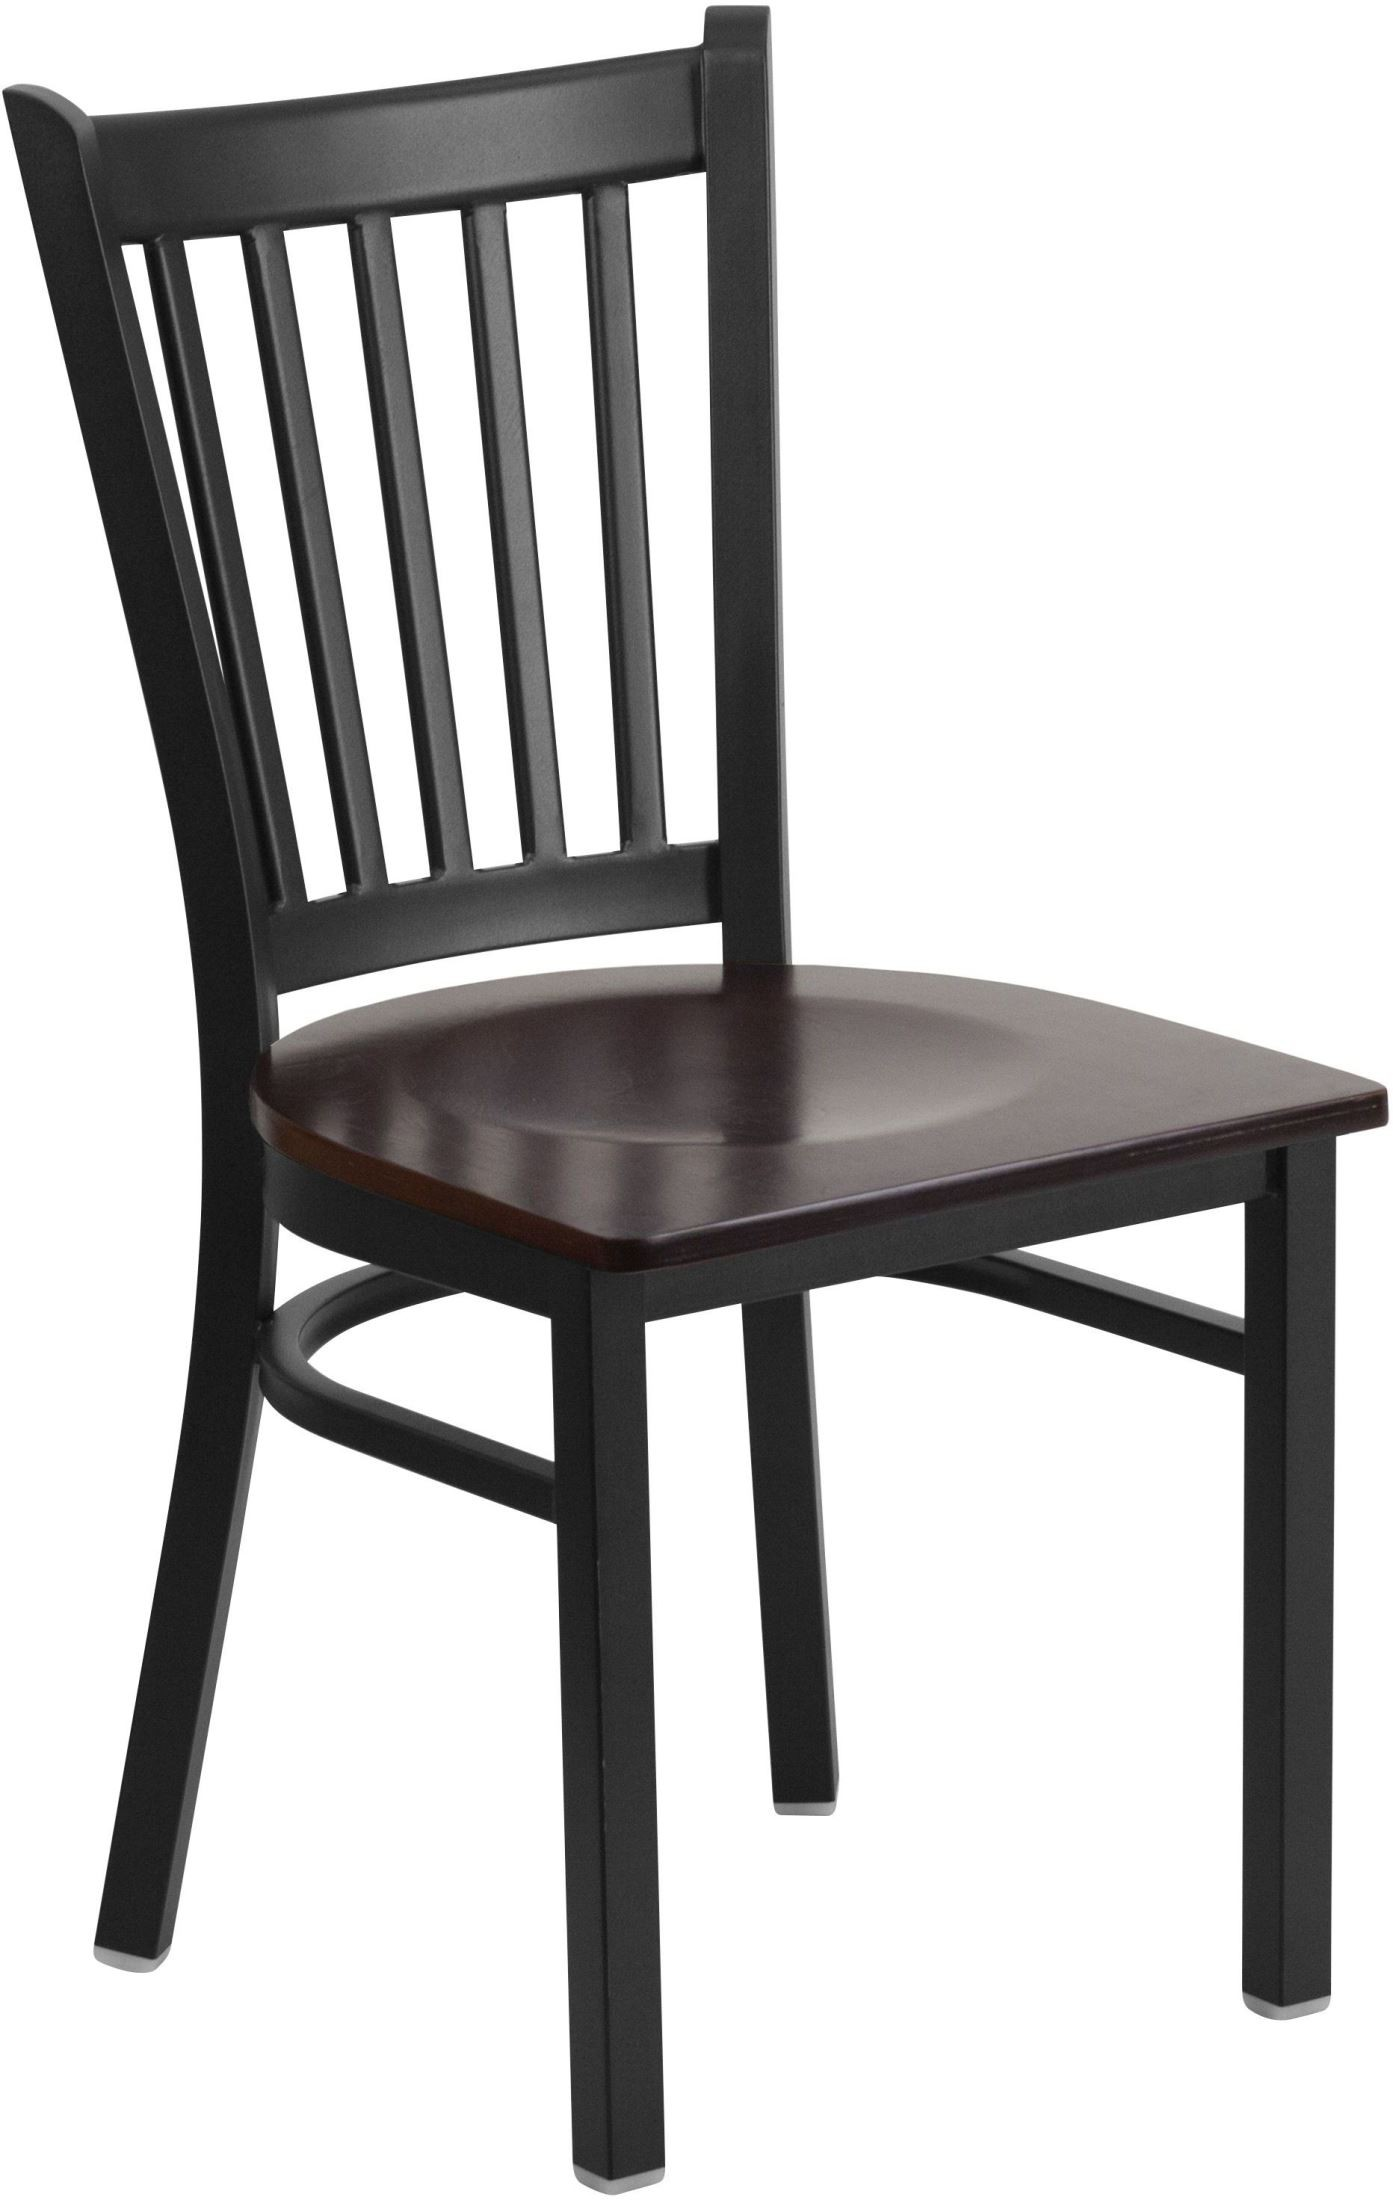 Marvelous photograph of  Wood Seat Restaurant Chair XU DG 6Q2B VRT WALW GG Renegade Furniture with #5E5553 color and 1393x2200 pixels